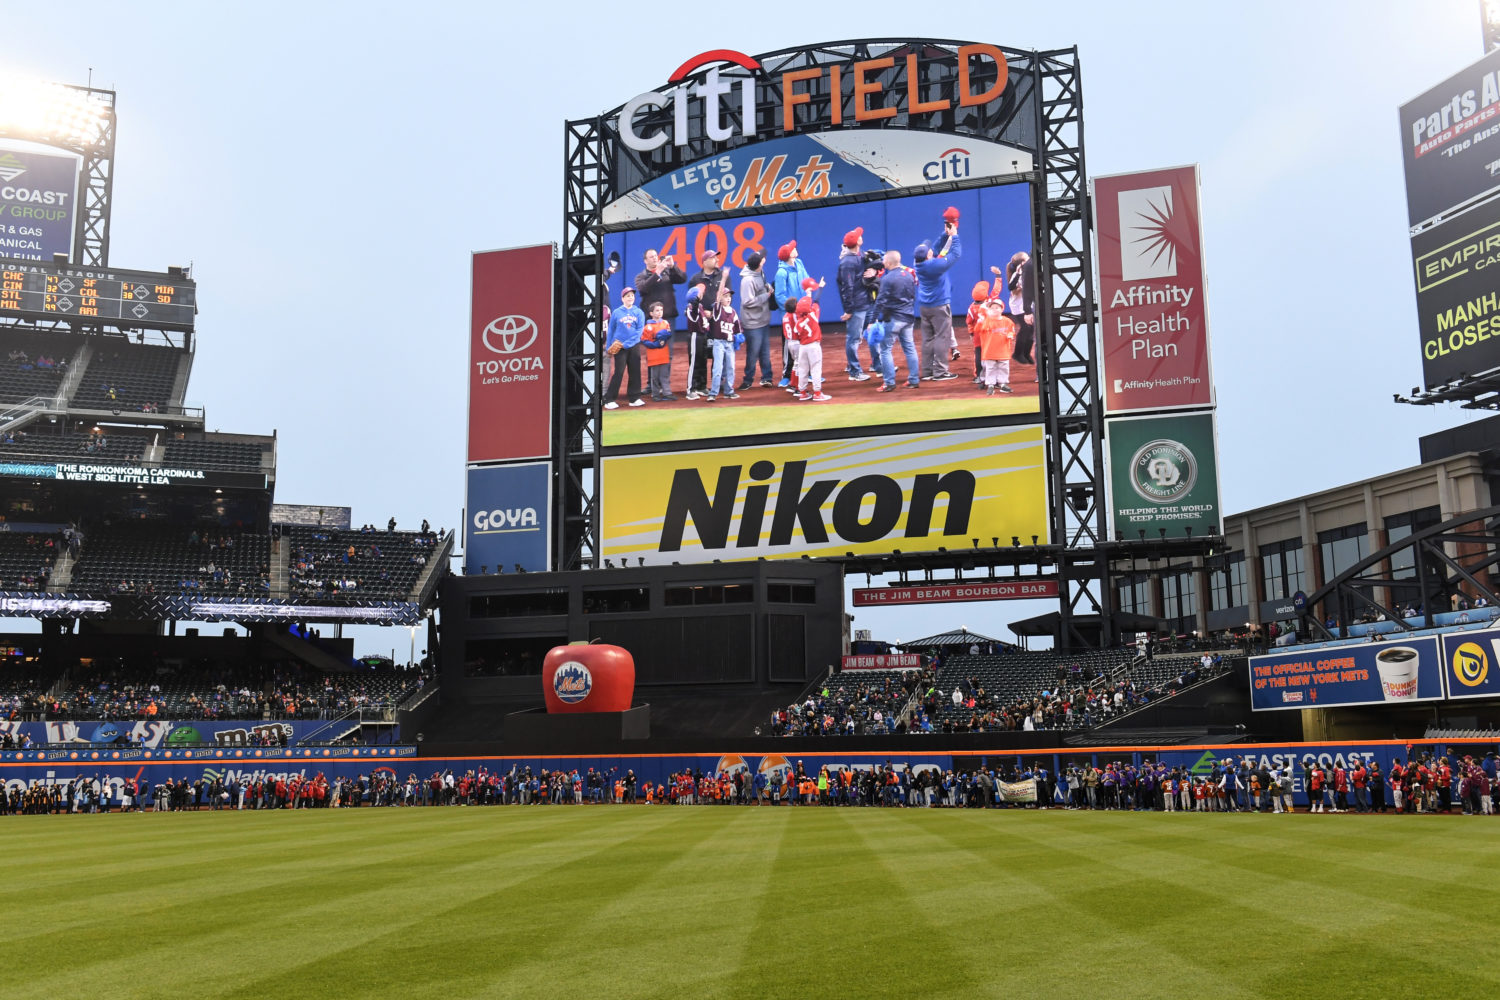 Youth and Family On Warning Track at Citi Field and on Screen